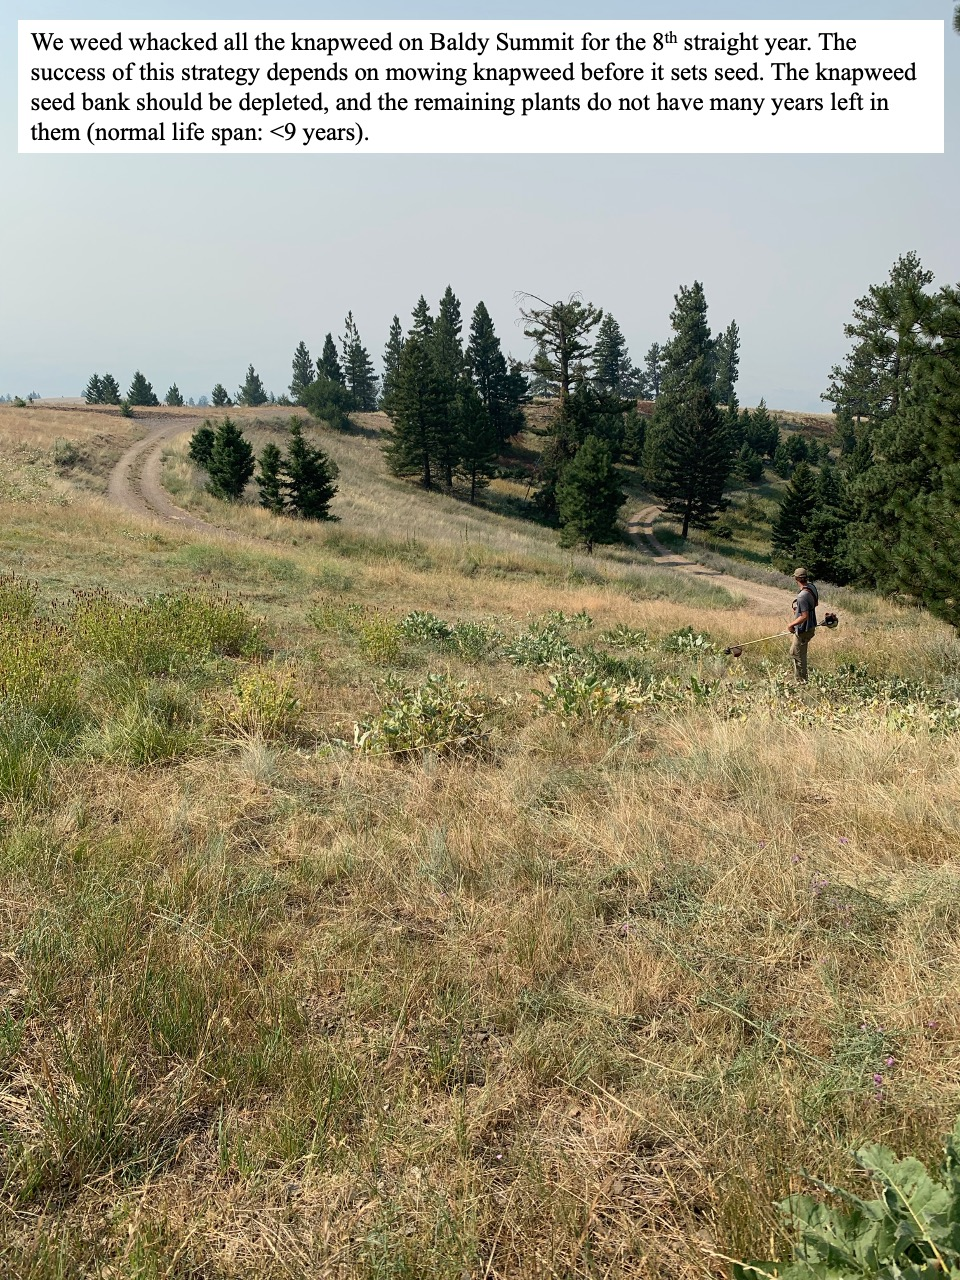 We weed whacked all the knapweed on Baldy Summit for the 8th straight year.